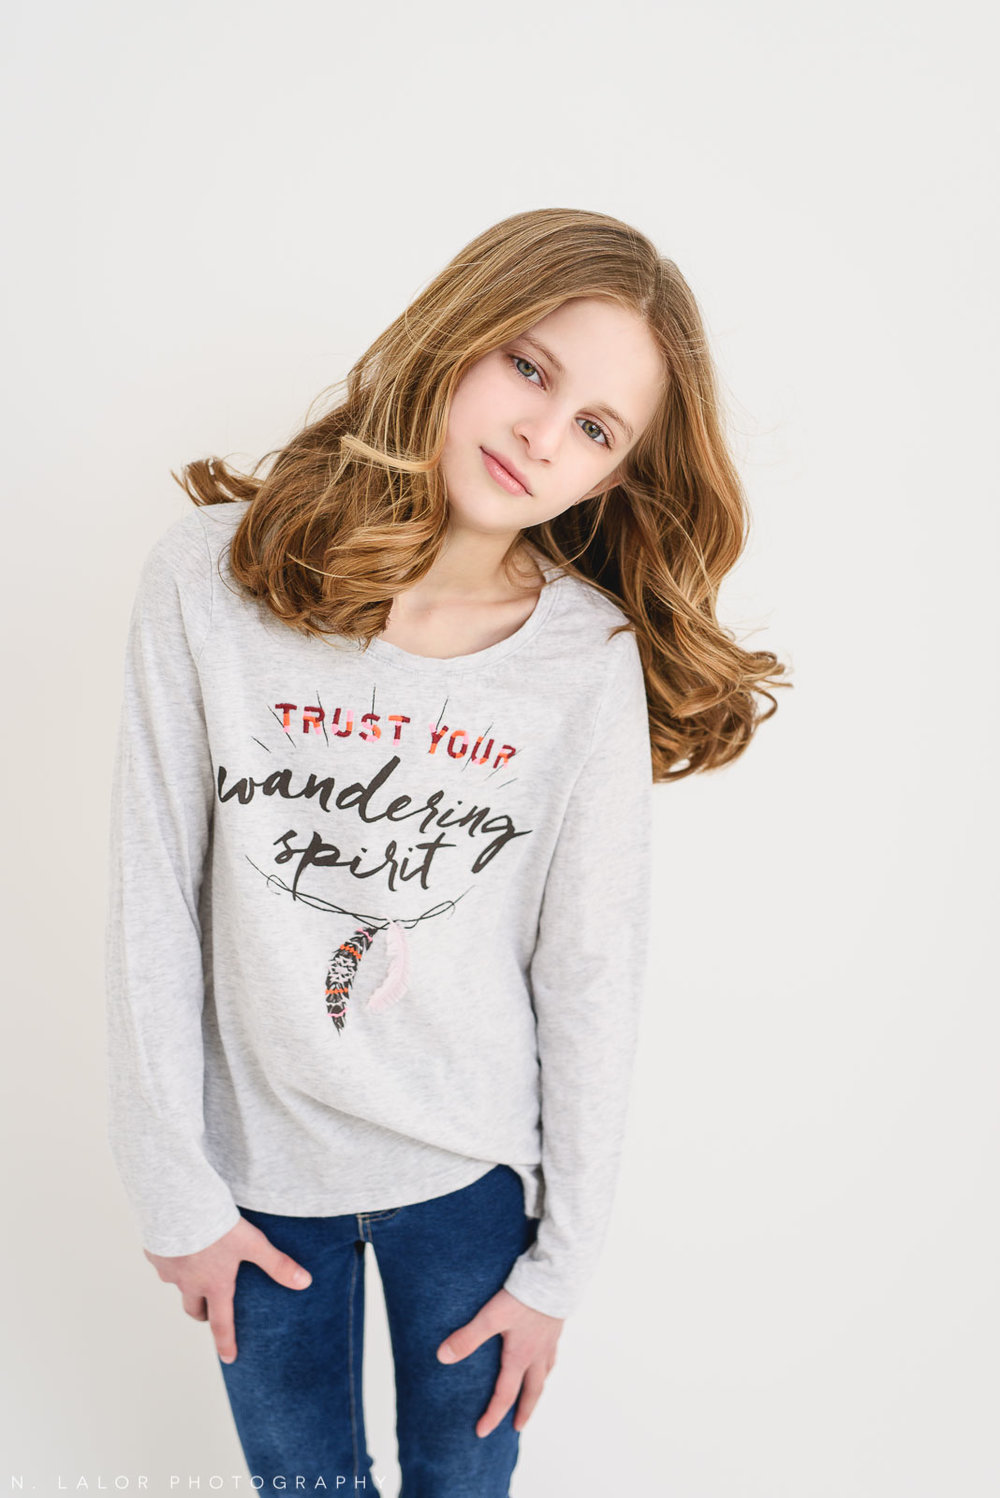 American girl Grace. Tween Studio photoshoot by N. Lalor Photography, located in Greenwich, CT.